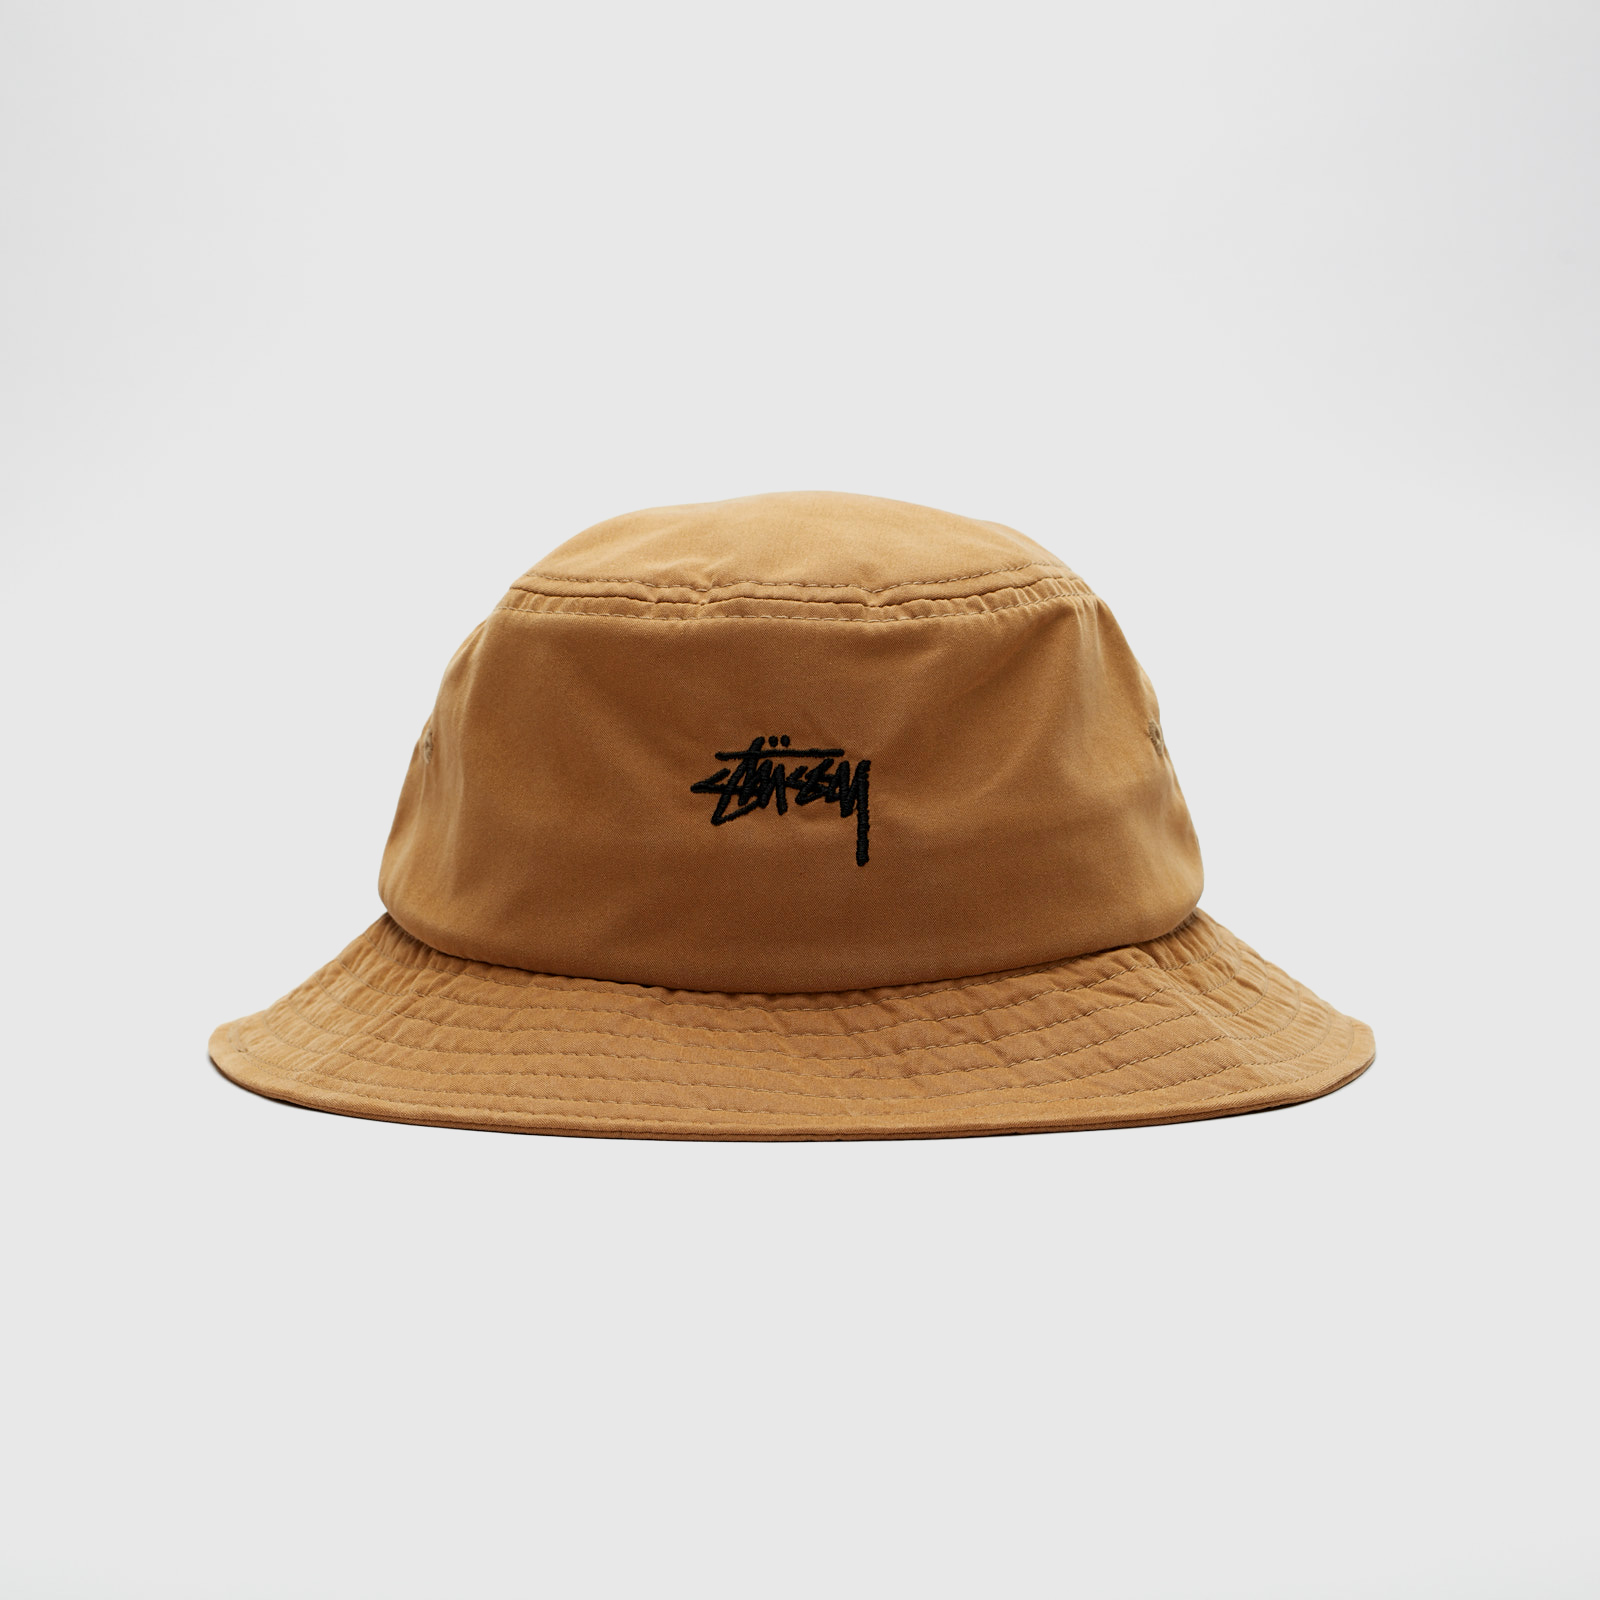 6e724df6f7c Stussy Stock Bucket Hat - 132885-1030 - Sneakersnstuff